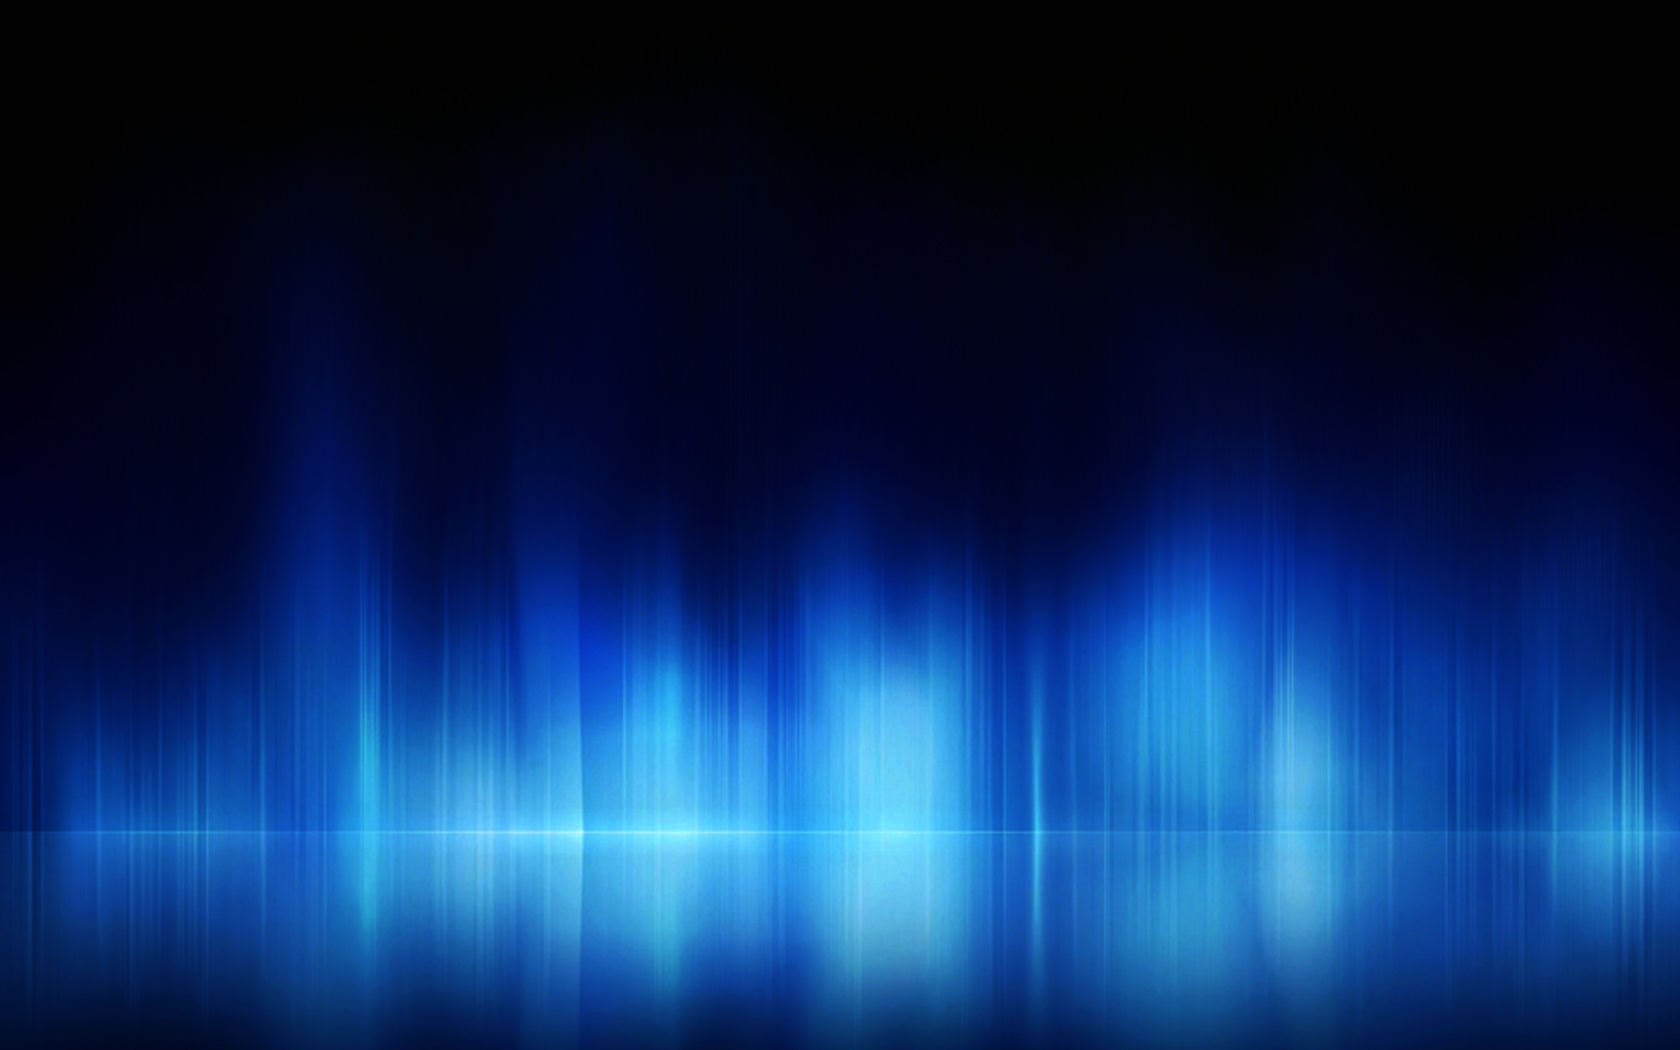 Blue Computer Wallpapers Desktop Backgrounds 1680x1050 1680x1050